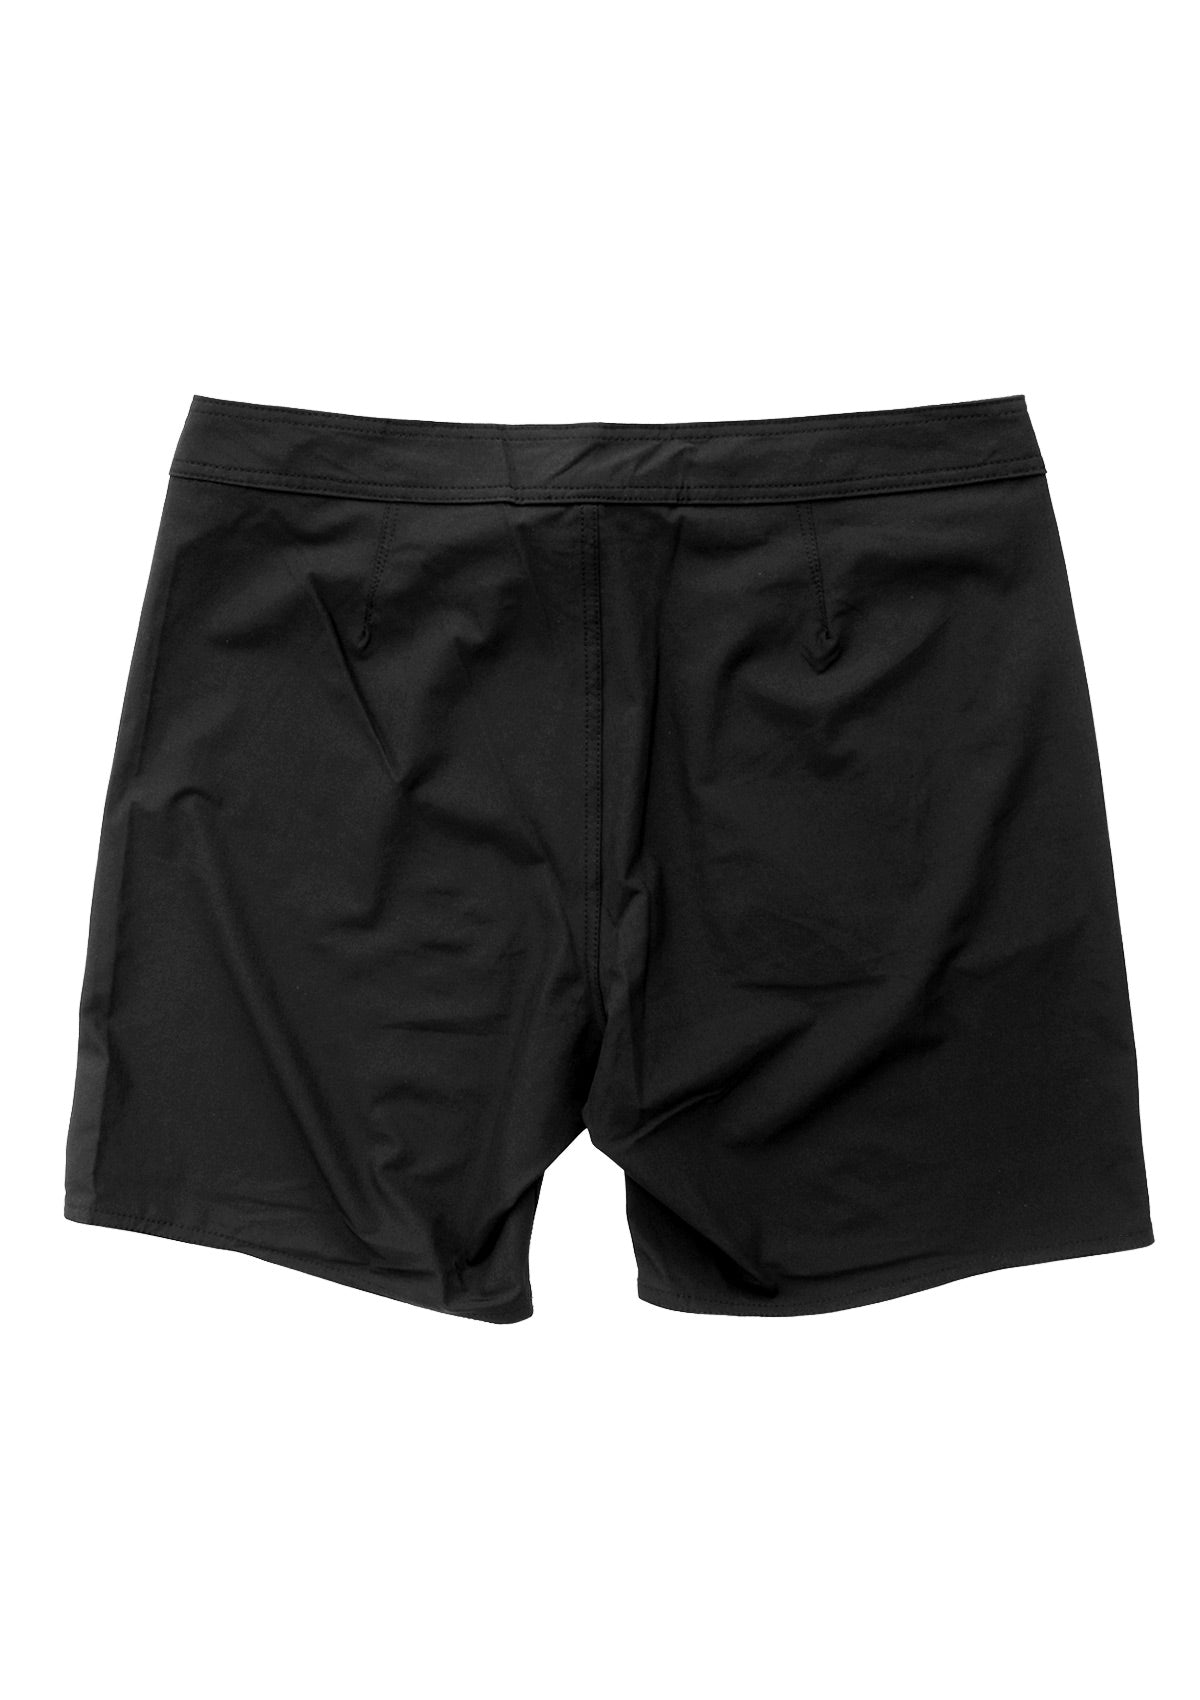 needessentials side mens surfing boardshorts non branded black swimming